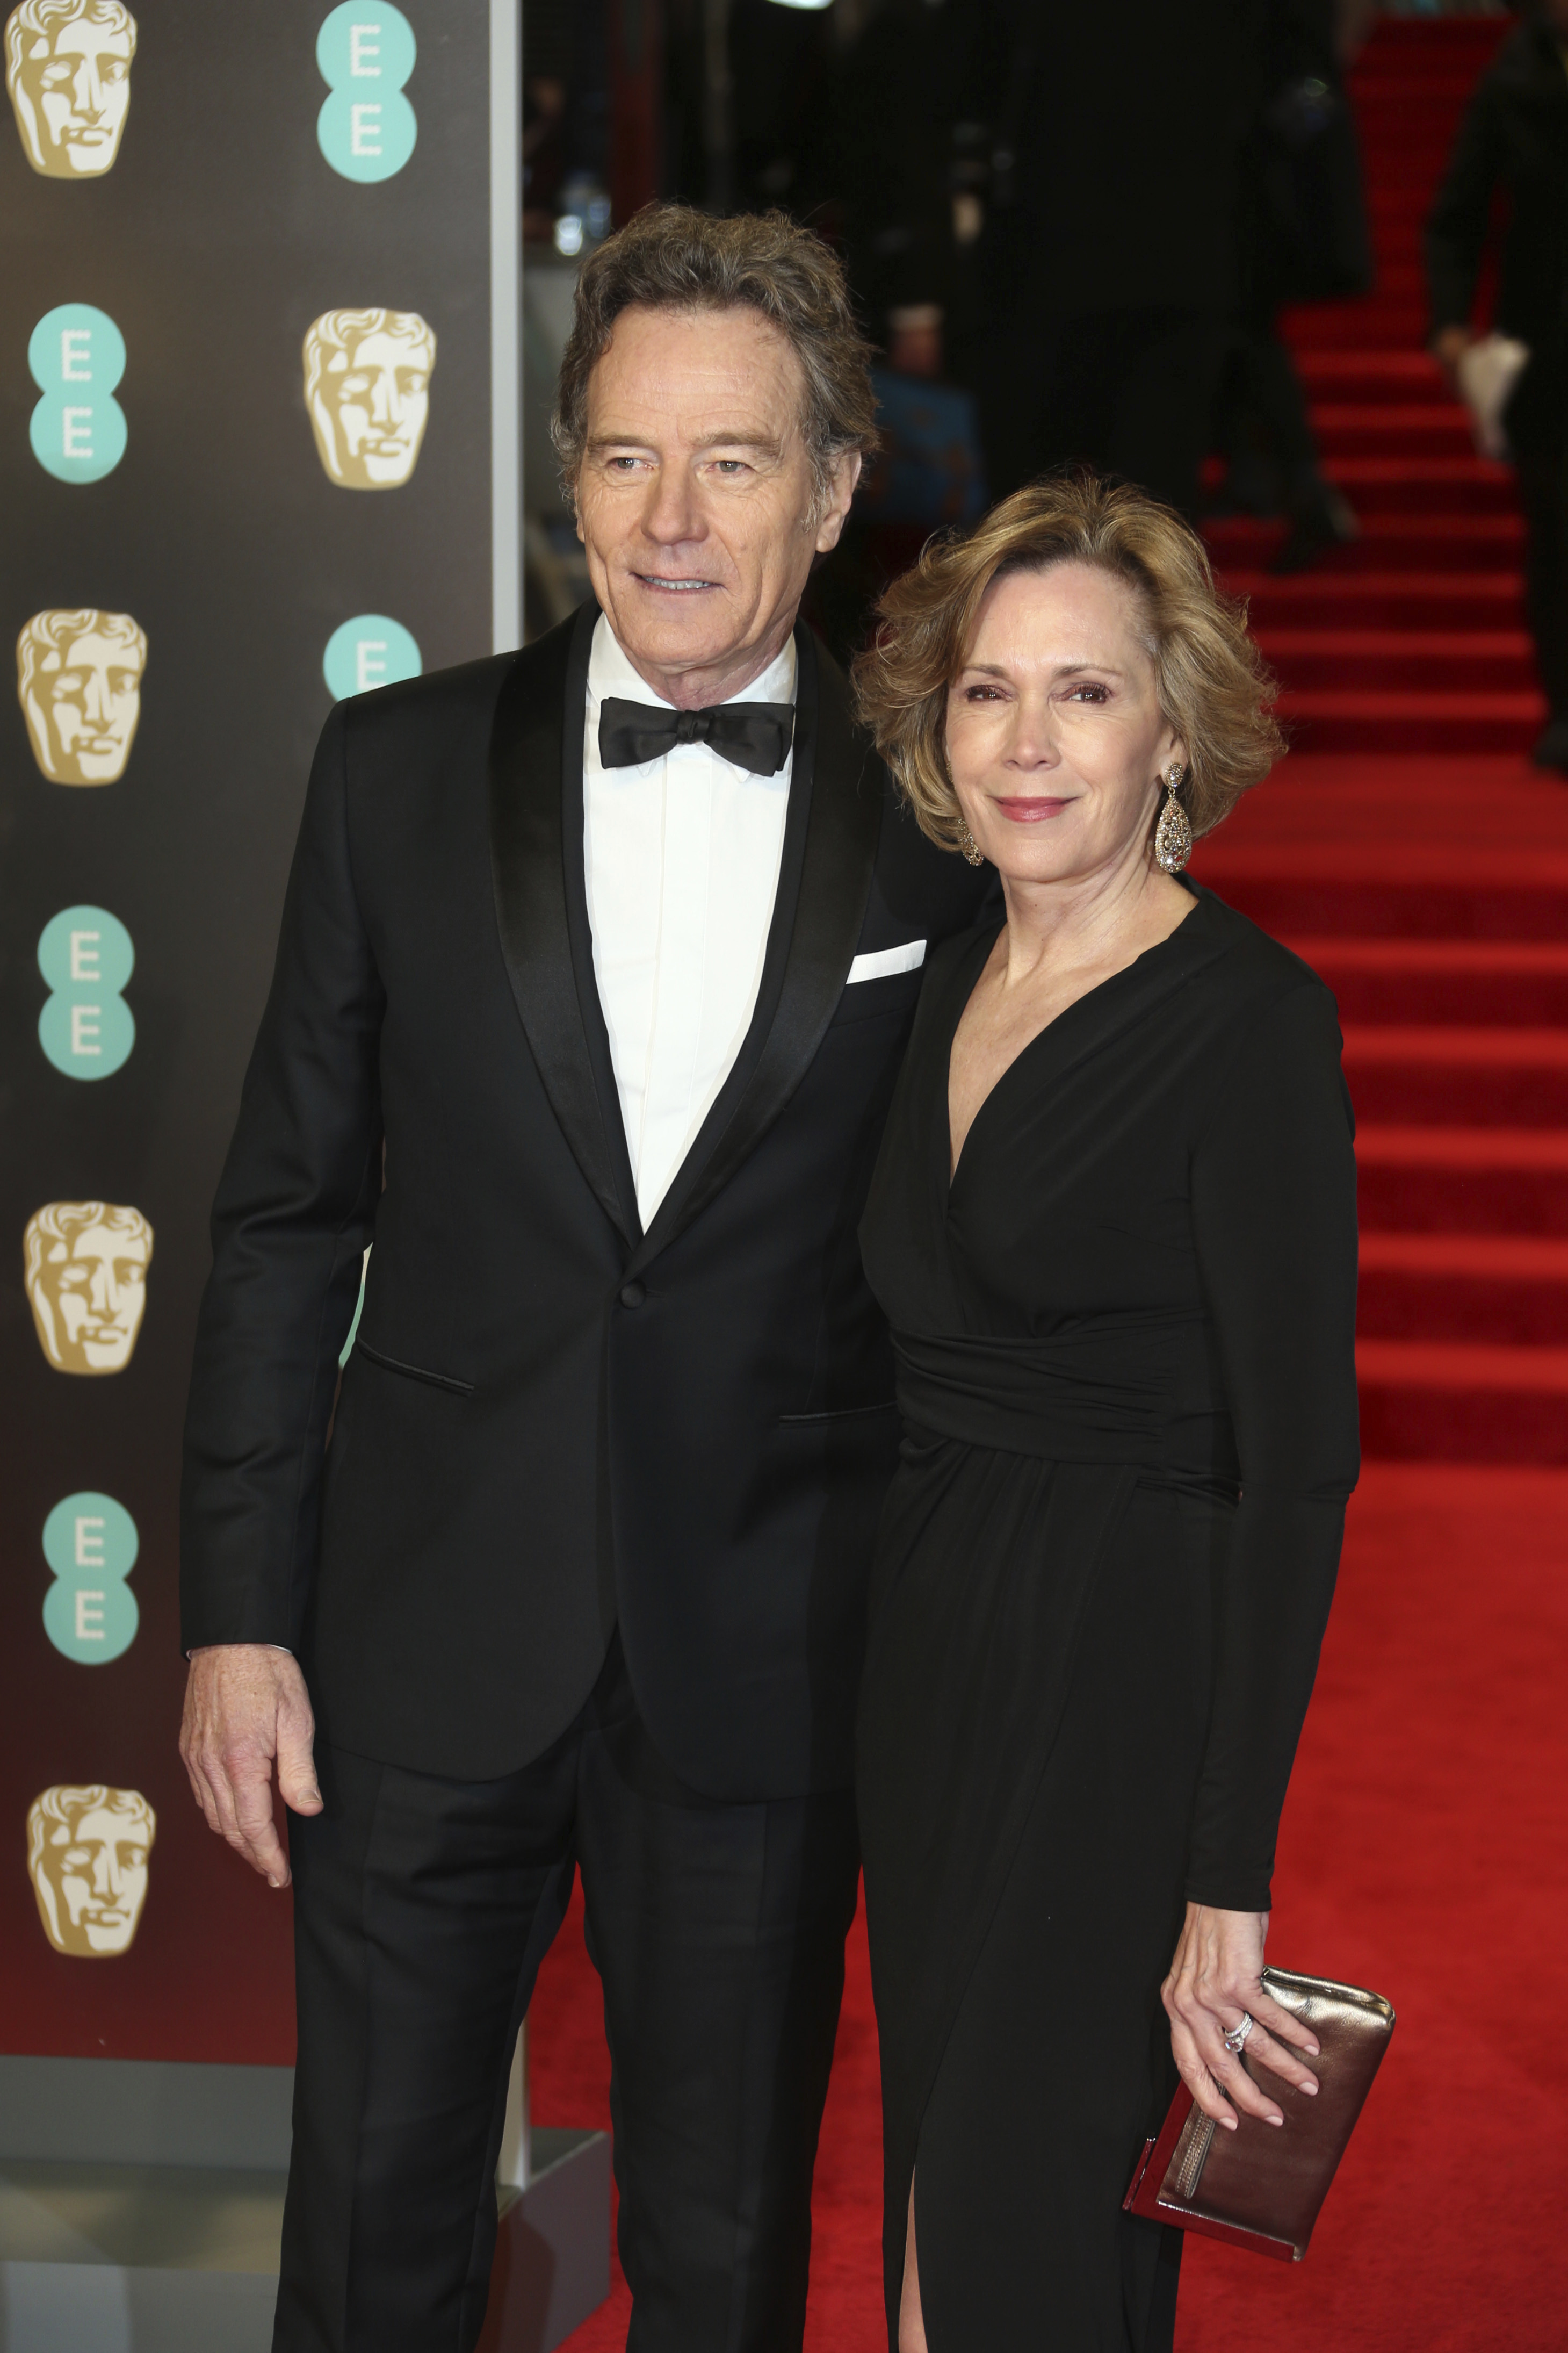 <div class='meta'><div class='origin-logo' data-origin='AP'></div><span class='caption-text' data-credit='Joel C Ryan/Invision/AP'>Actor Bryan Cranston and Robin Dearden pose for photographers upon arrival at the BAFTA 2018 Awards in London, Sunday, Feb. 18, 2018.</span></div>